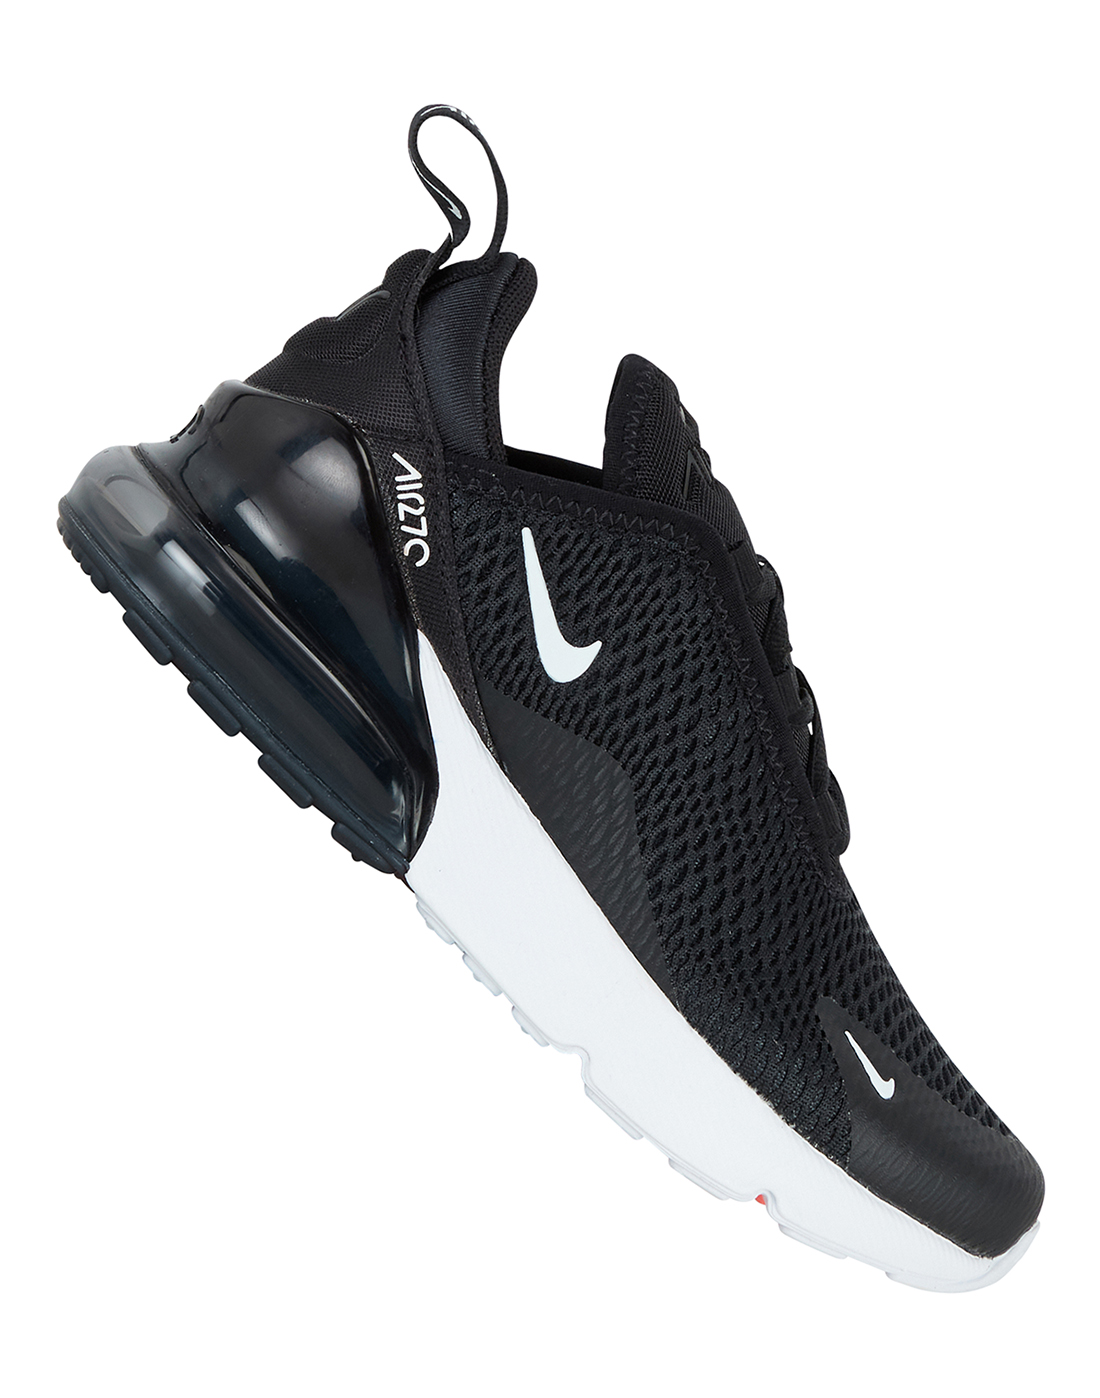 uk availability 9d208 063ac Younger Kids Air Max 270